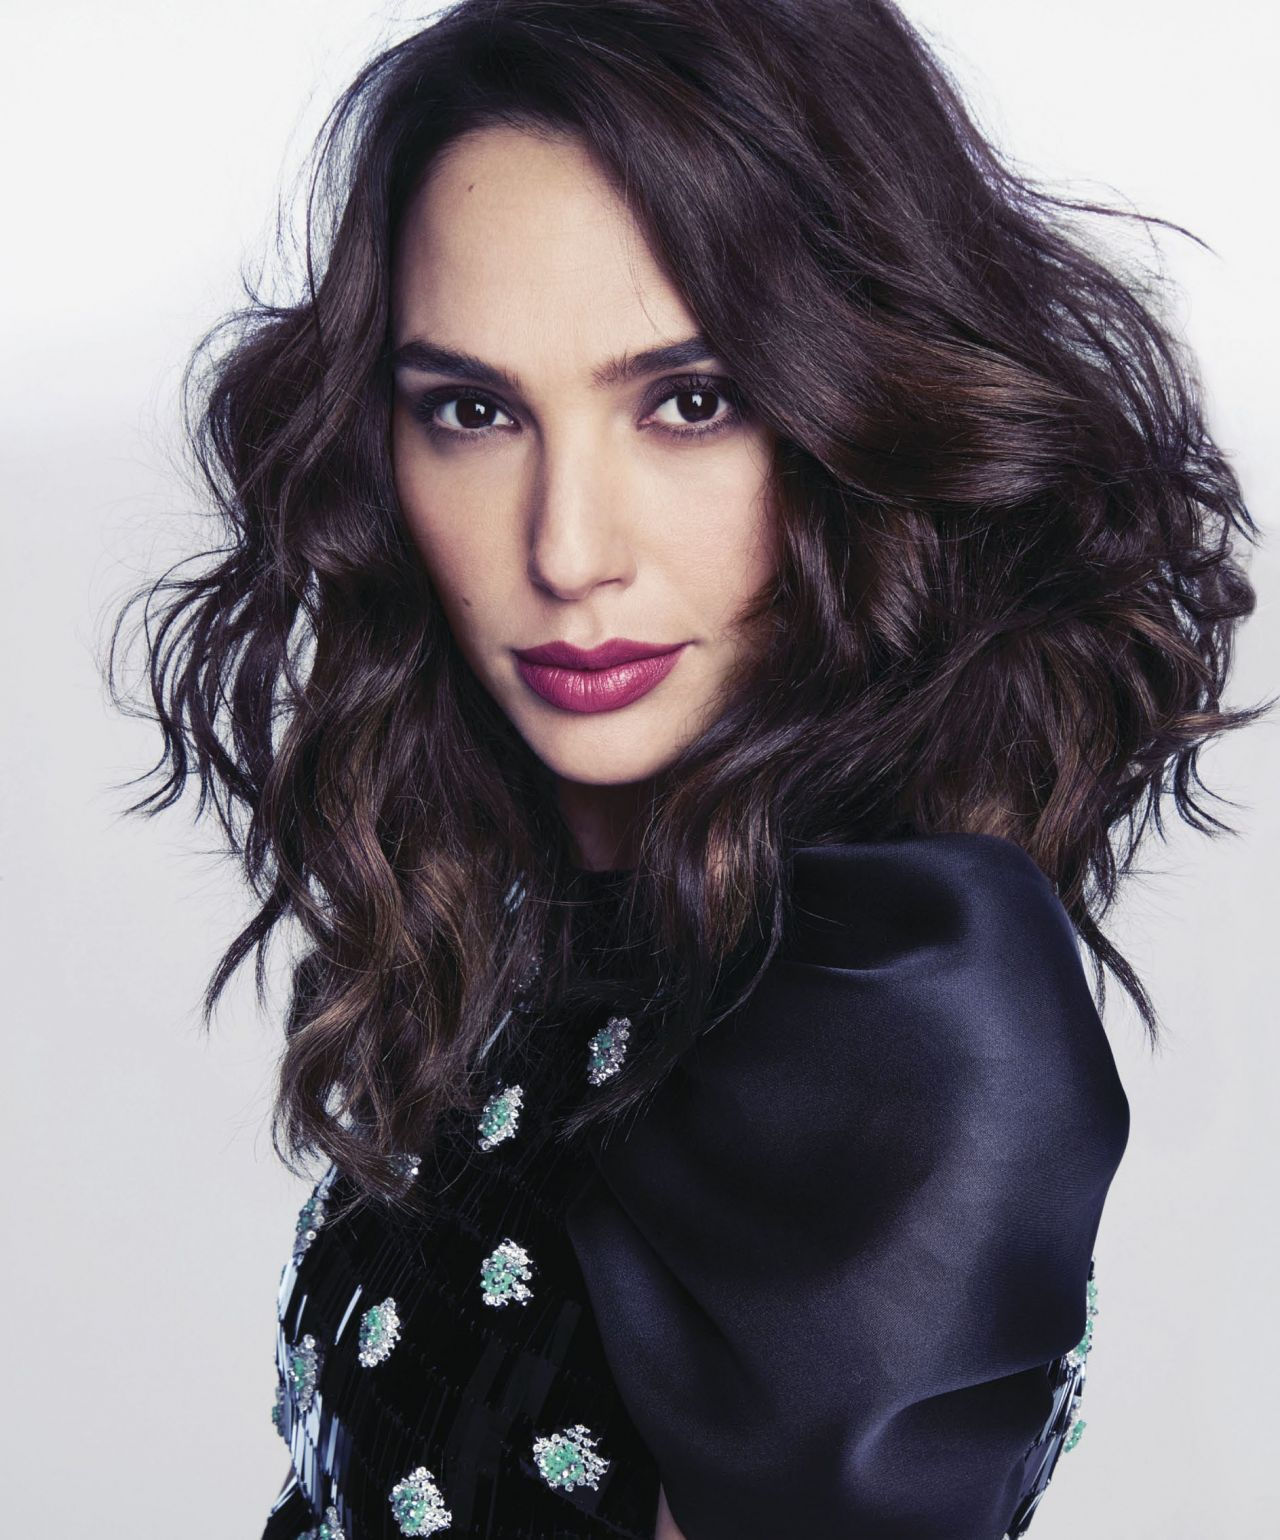 http://celebmafia.com/wp-content/uploads/2017/08/gal-gadot-photoshoot-for-marie-claire-2017-4.jpg